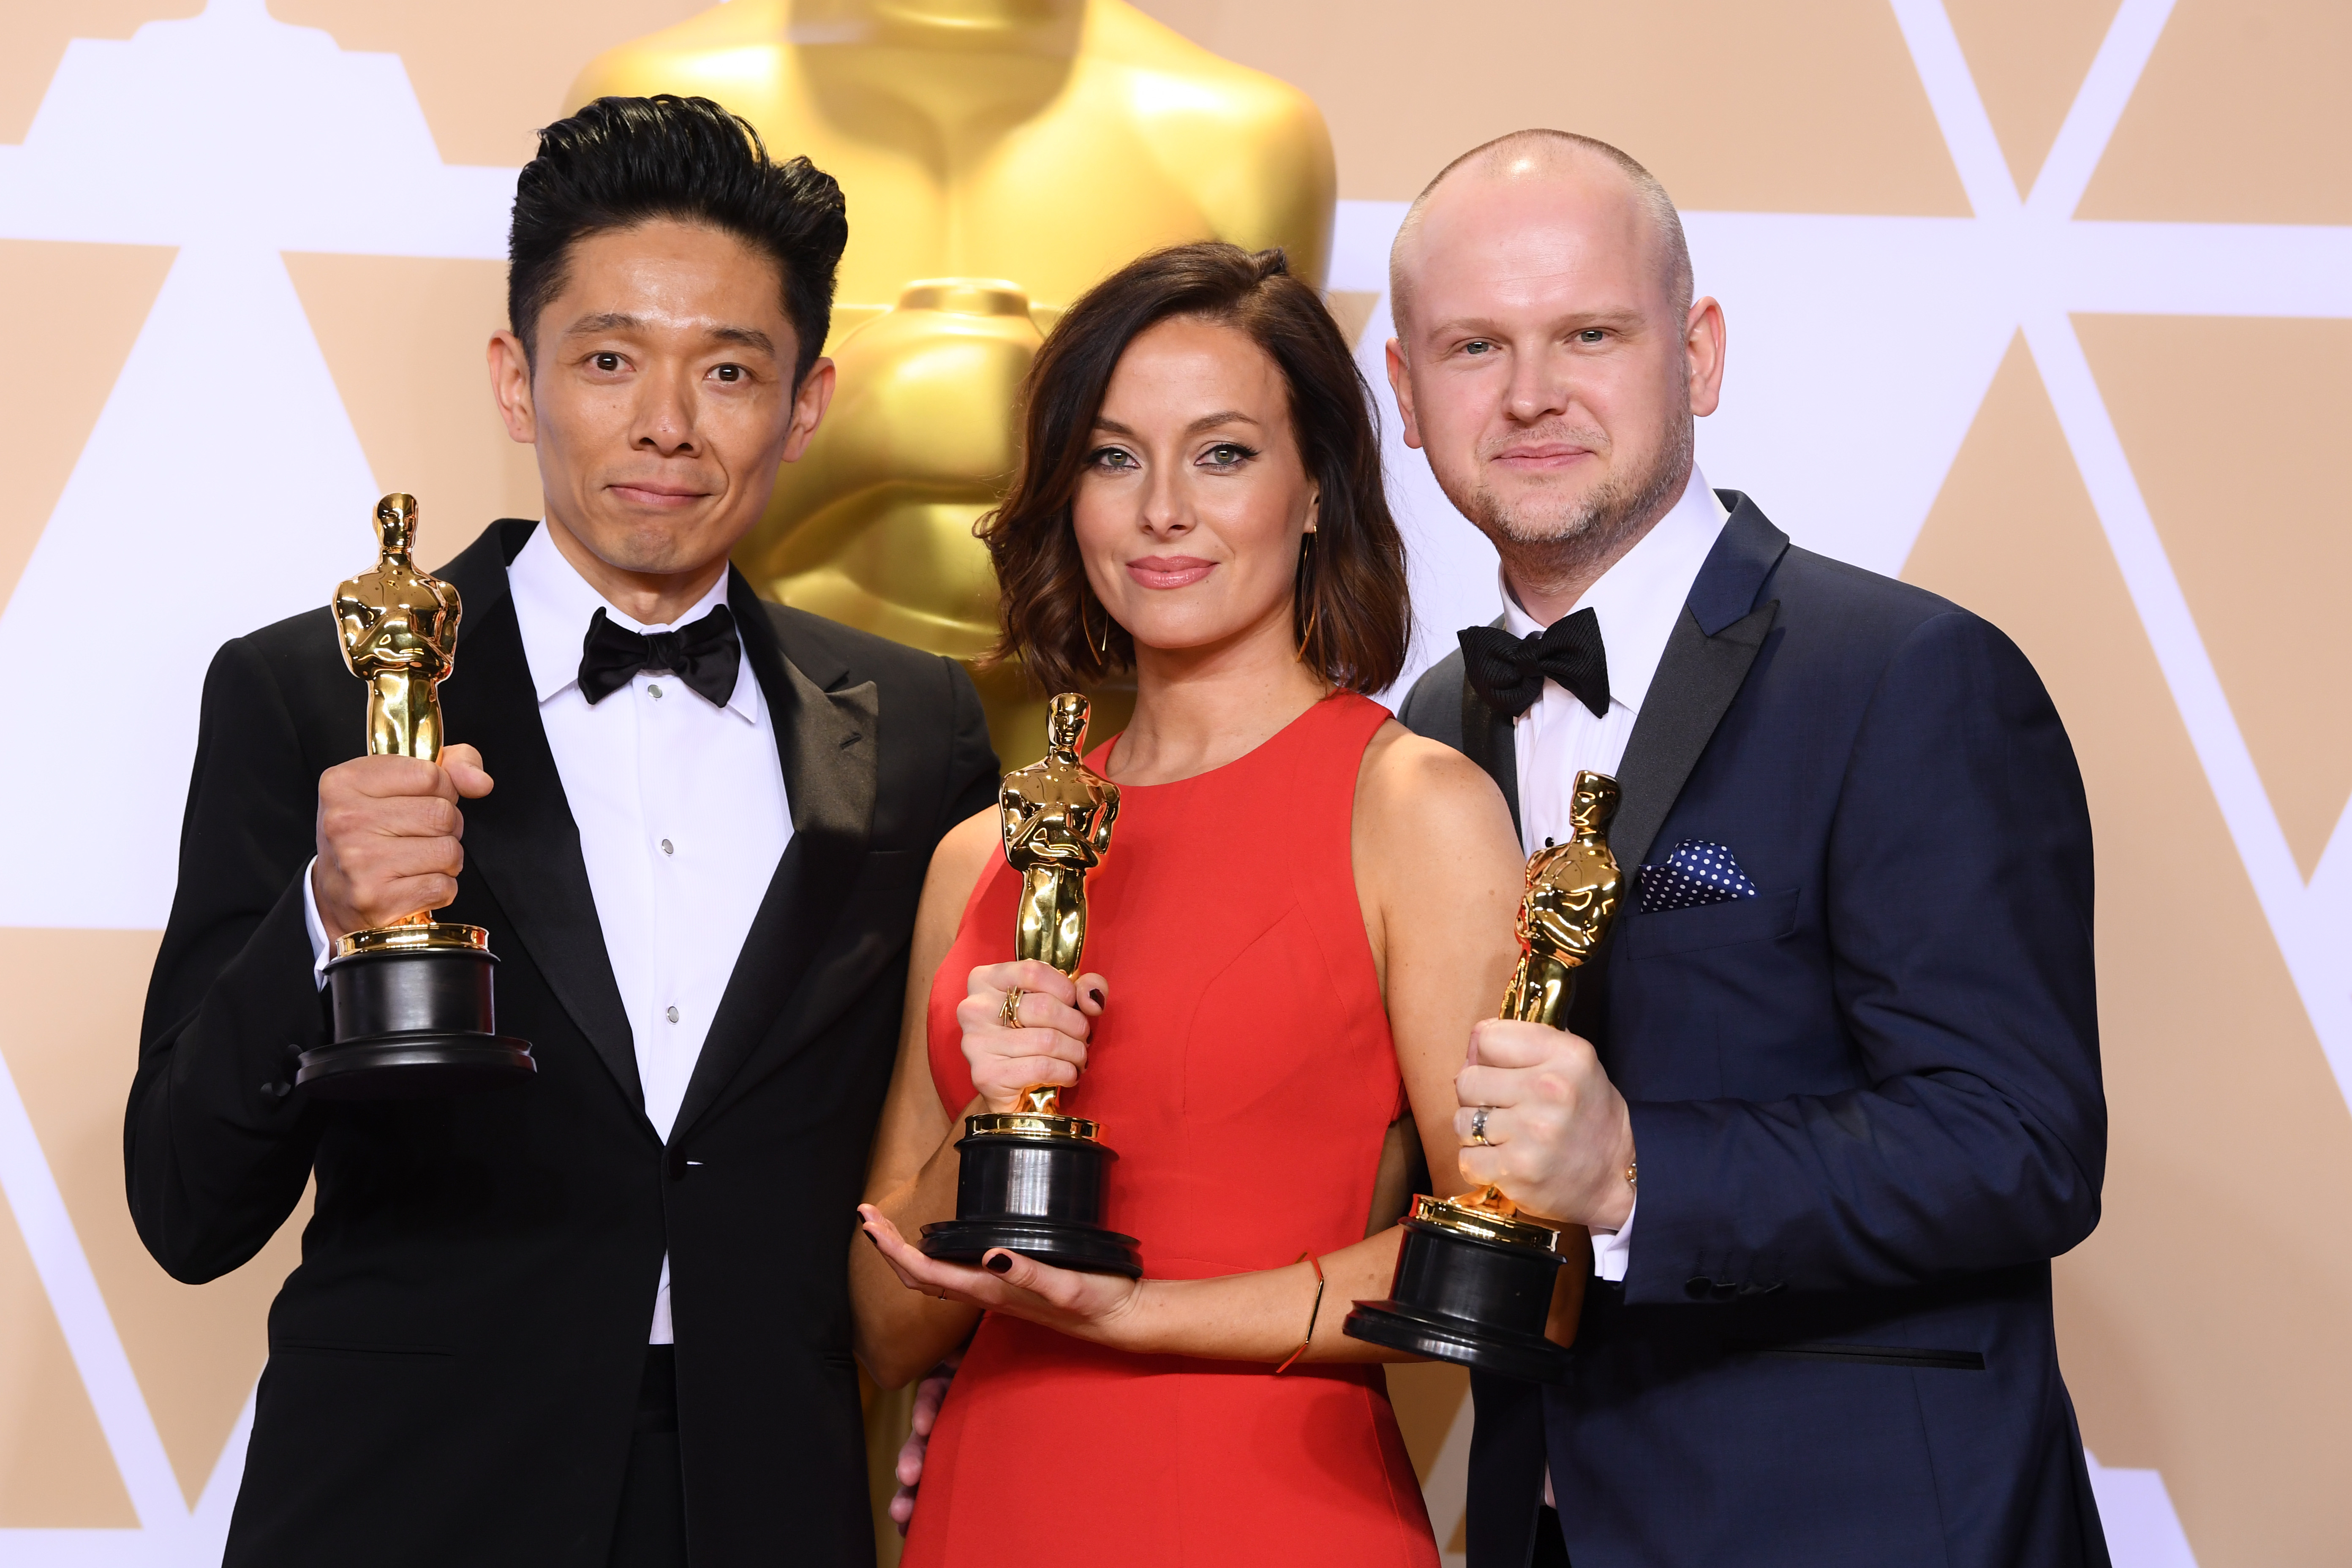 2018 Oscars: Brought to You by Diversity, Inclusion